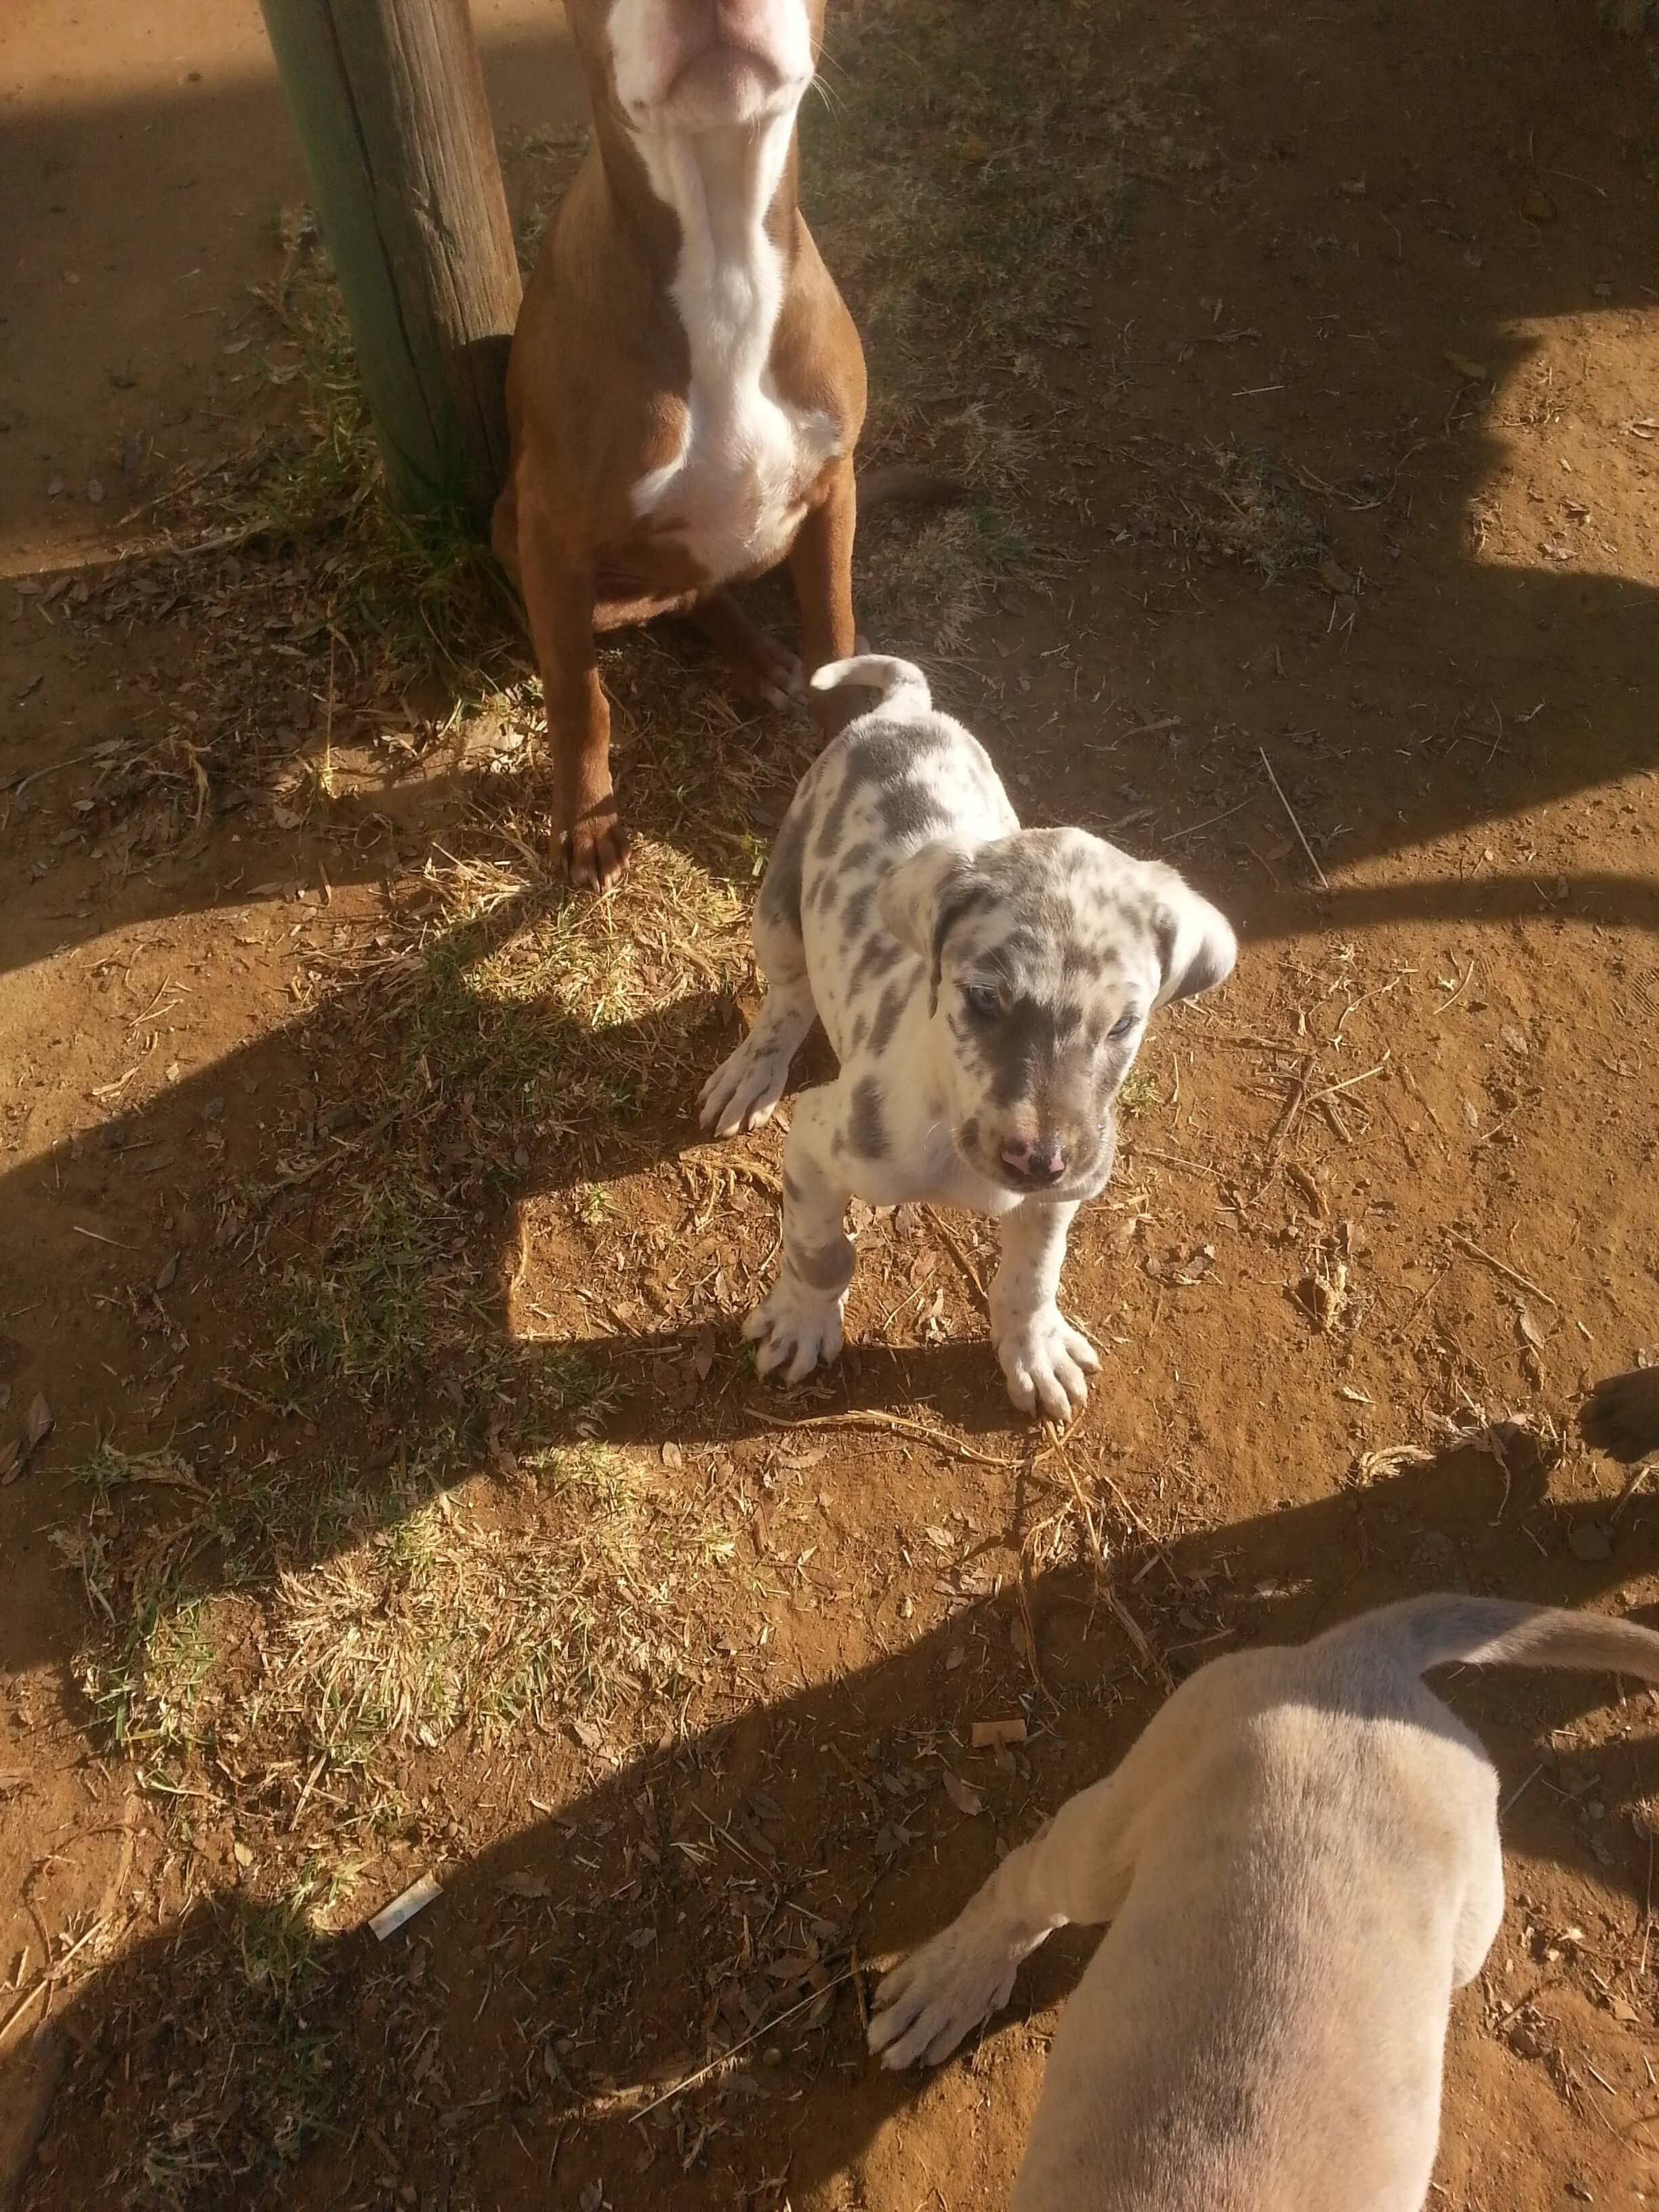 Great Dane Puppies for Sale in Kwazulu Natal by Deeza Riding Scool Steyn